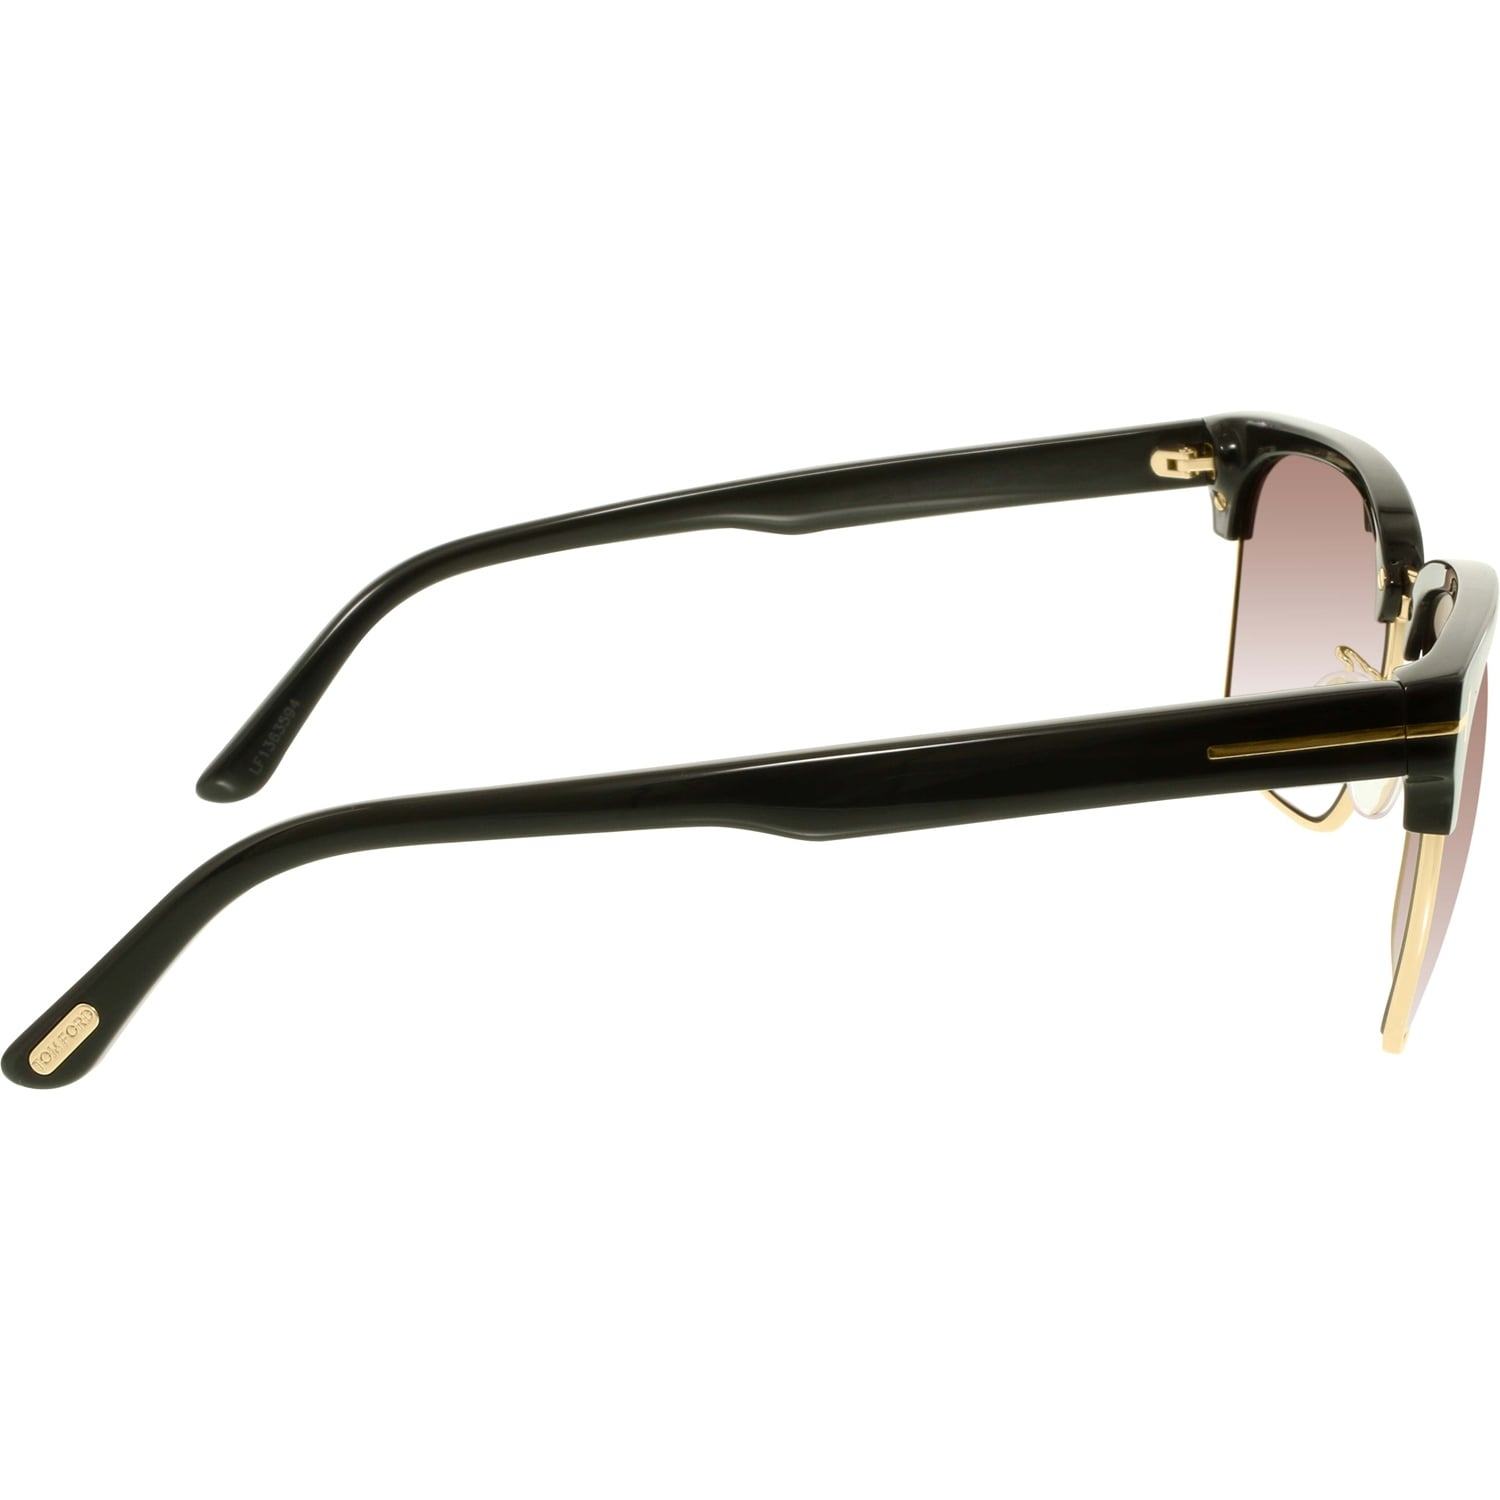 48c46b3ae9 Shop Tom Ford Men s Polarized FT0367-01D-57 Black Square Sunglasses - Free  Shipping Today - Overstock - 18901237